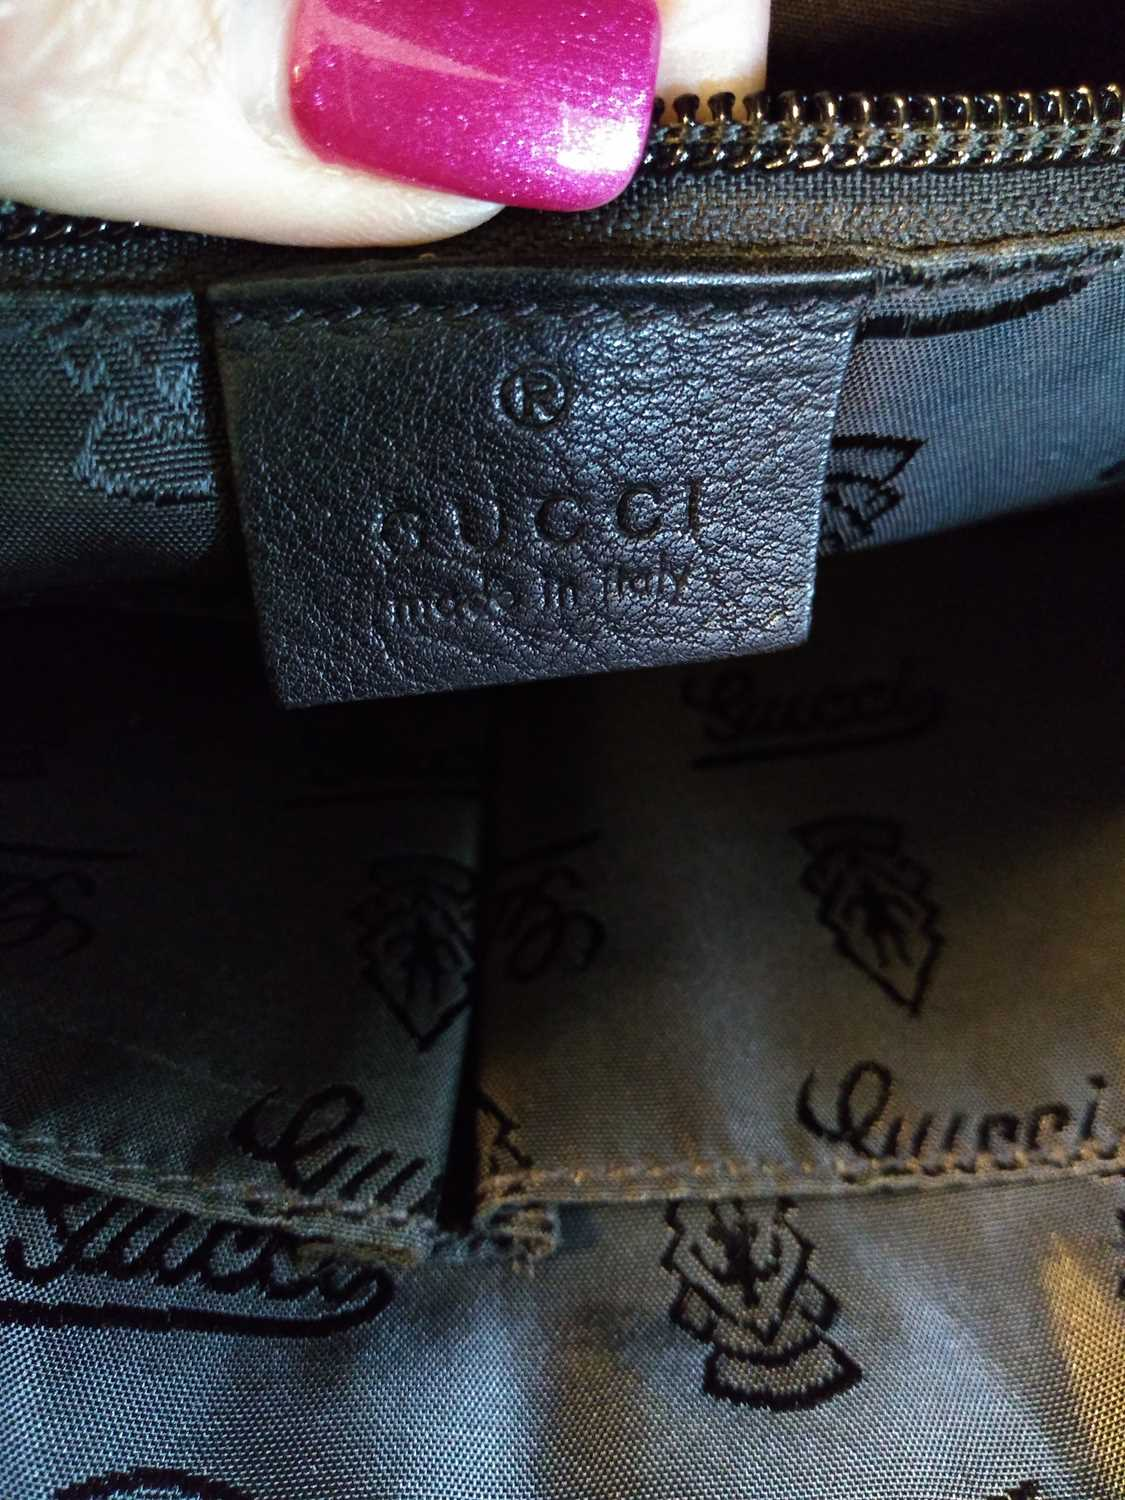 A Gucci black leather crossbody messenger bag - Image 6 of 7